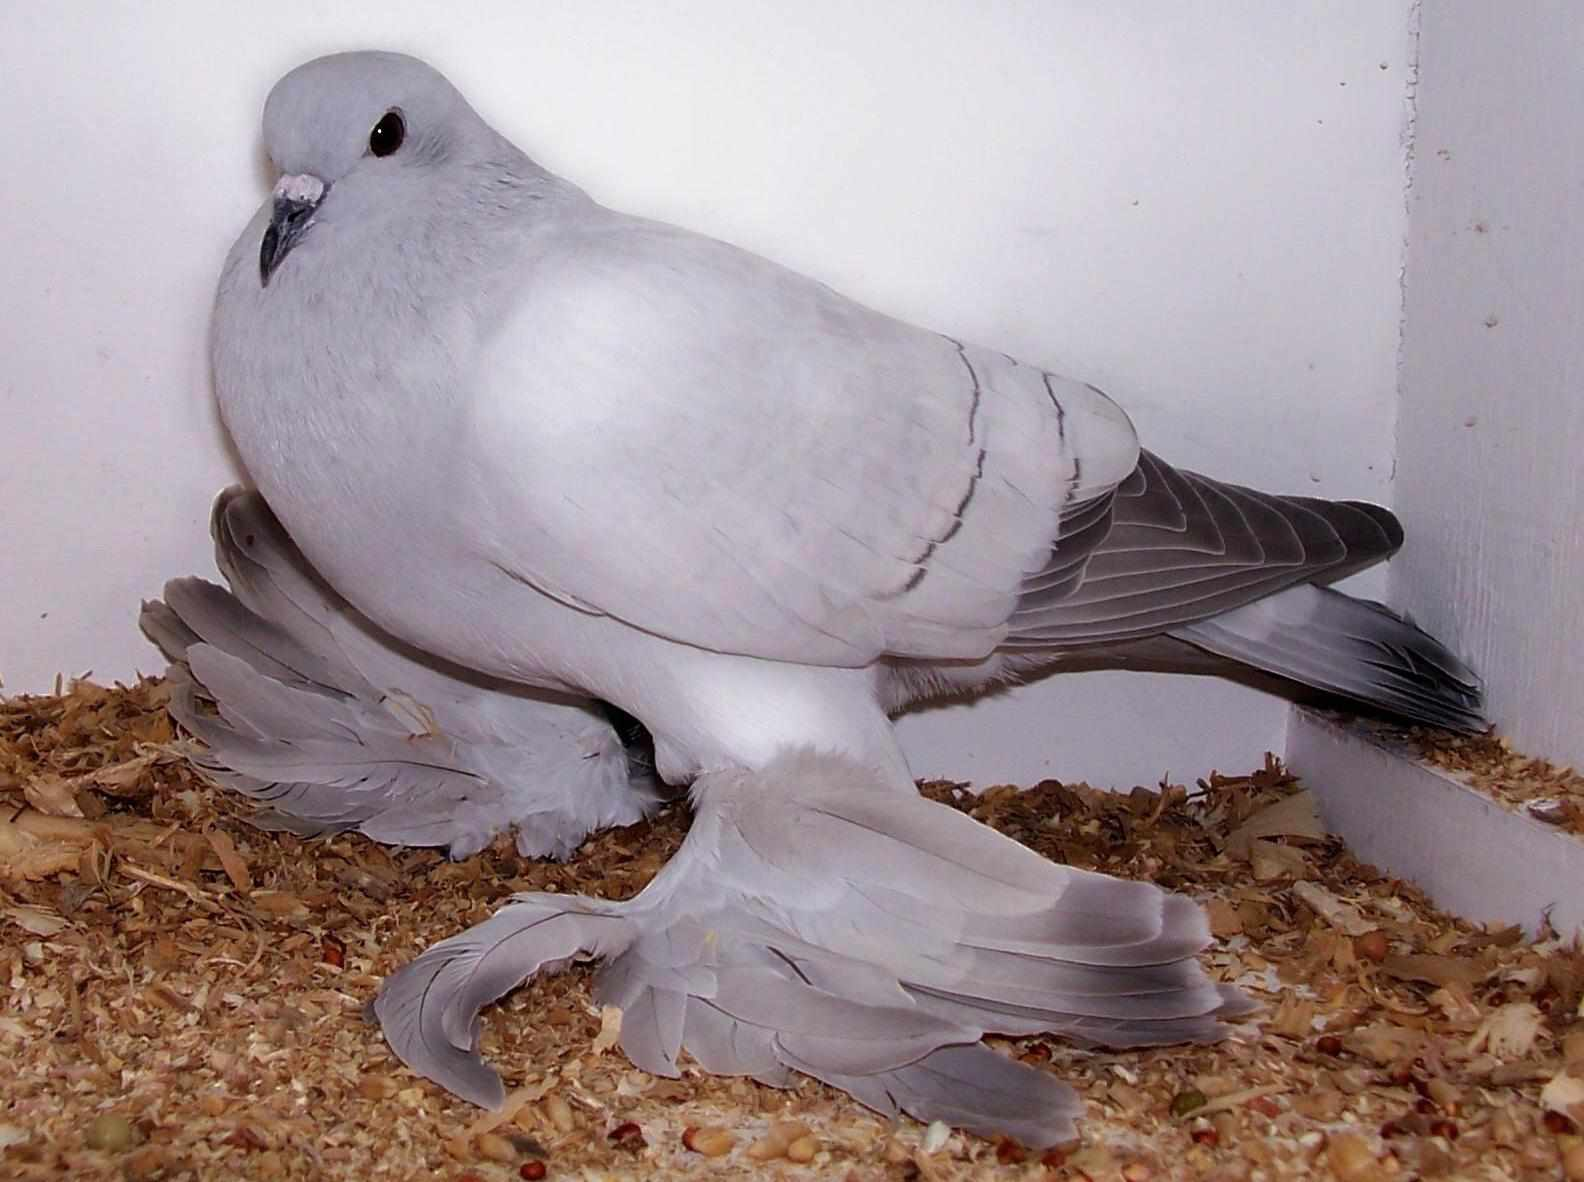 Ice pigeon standing to the side on sawdust